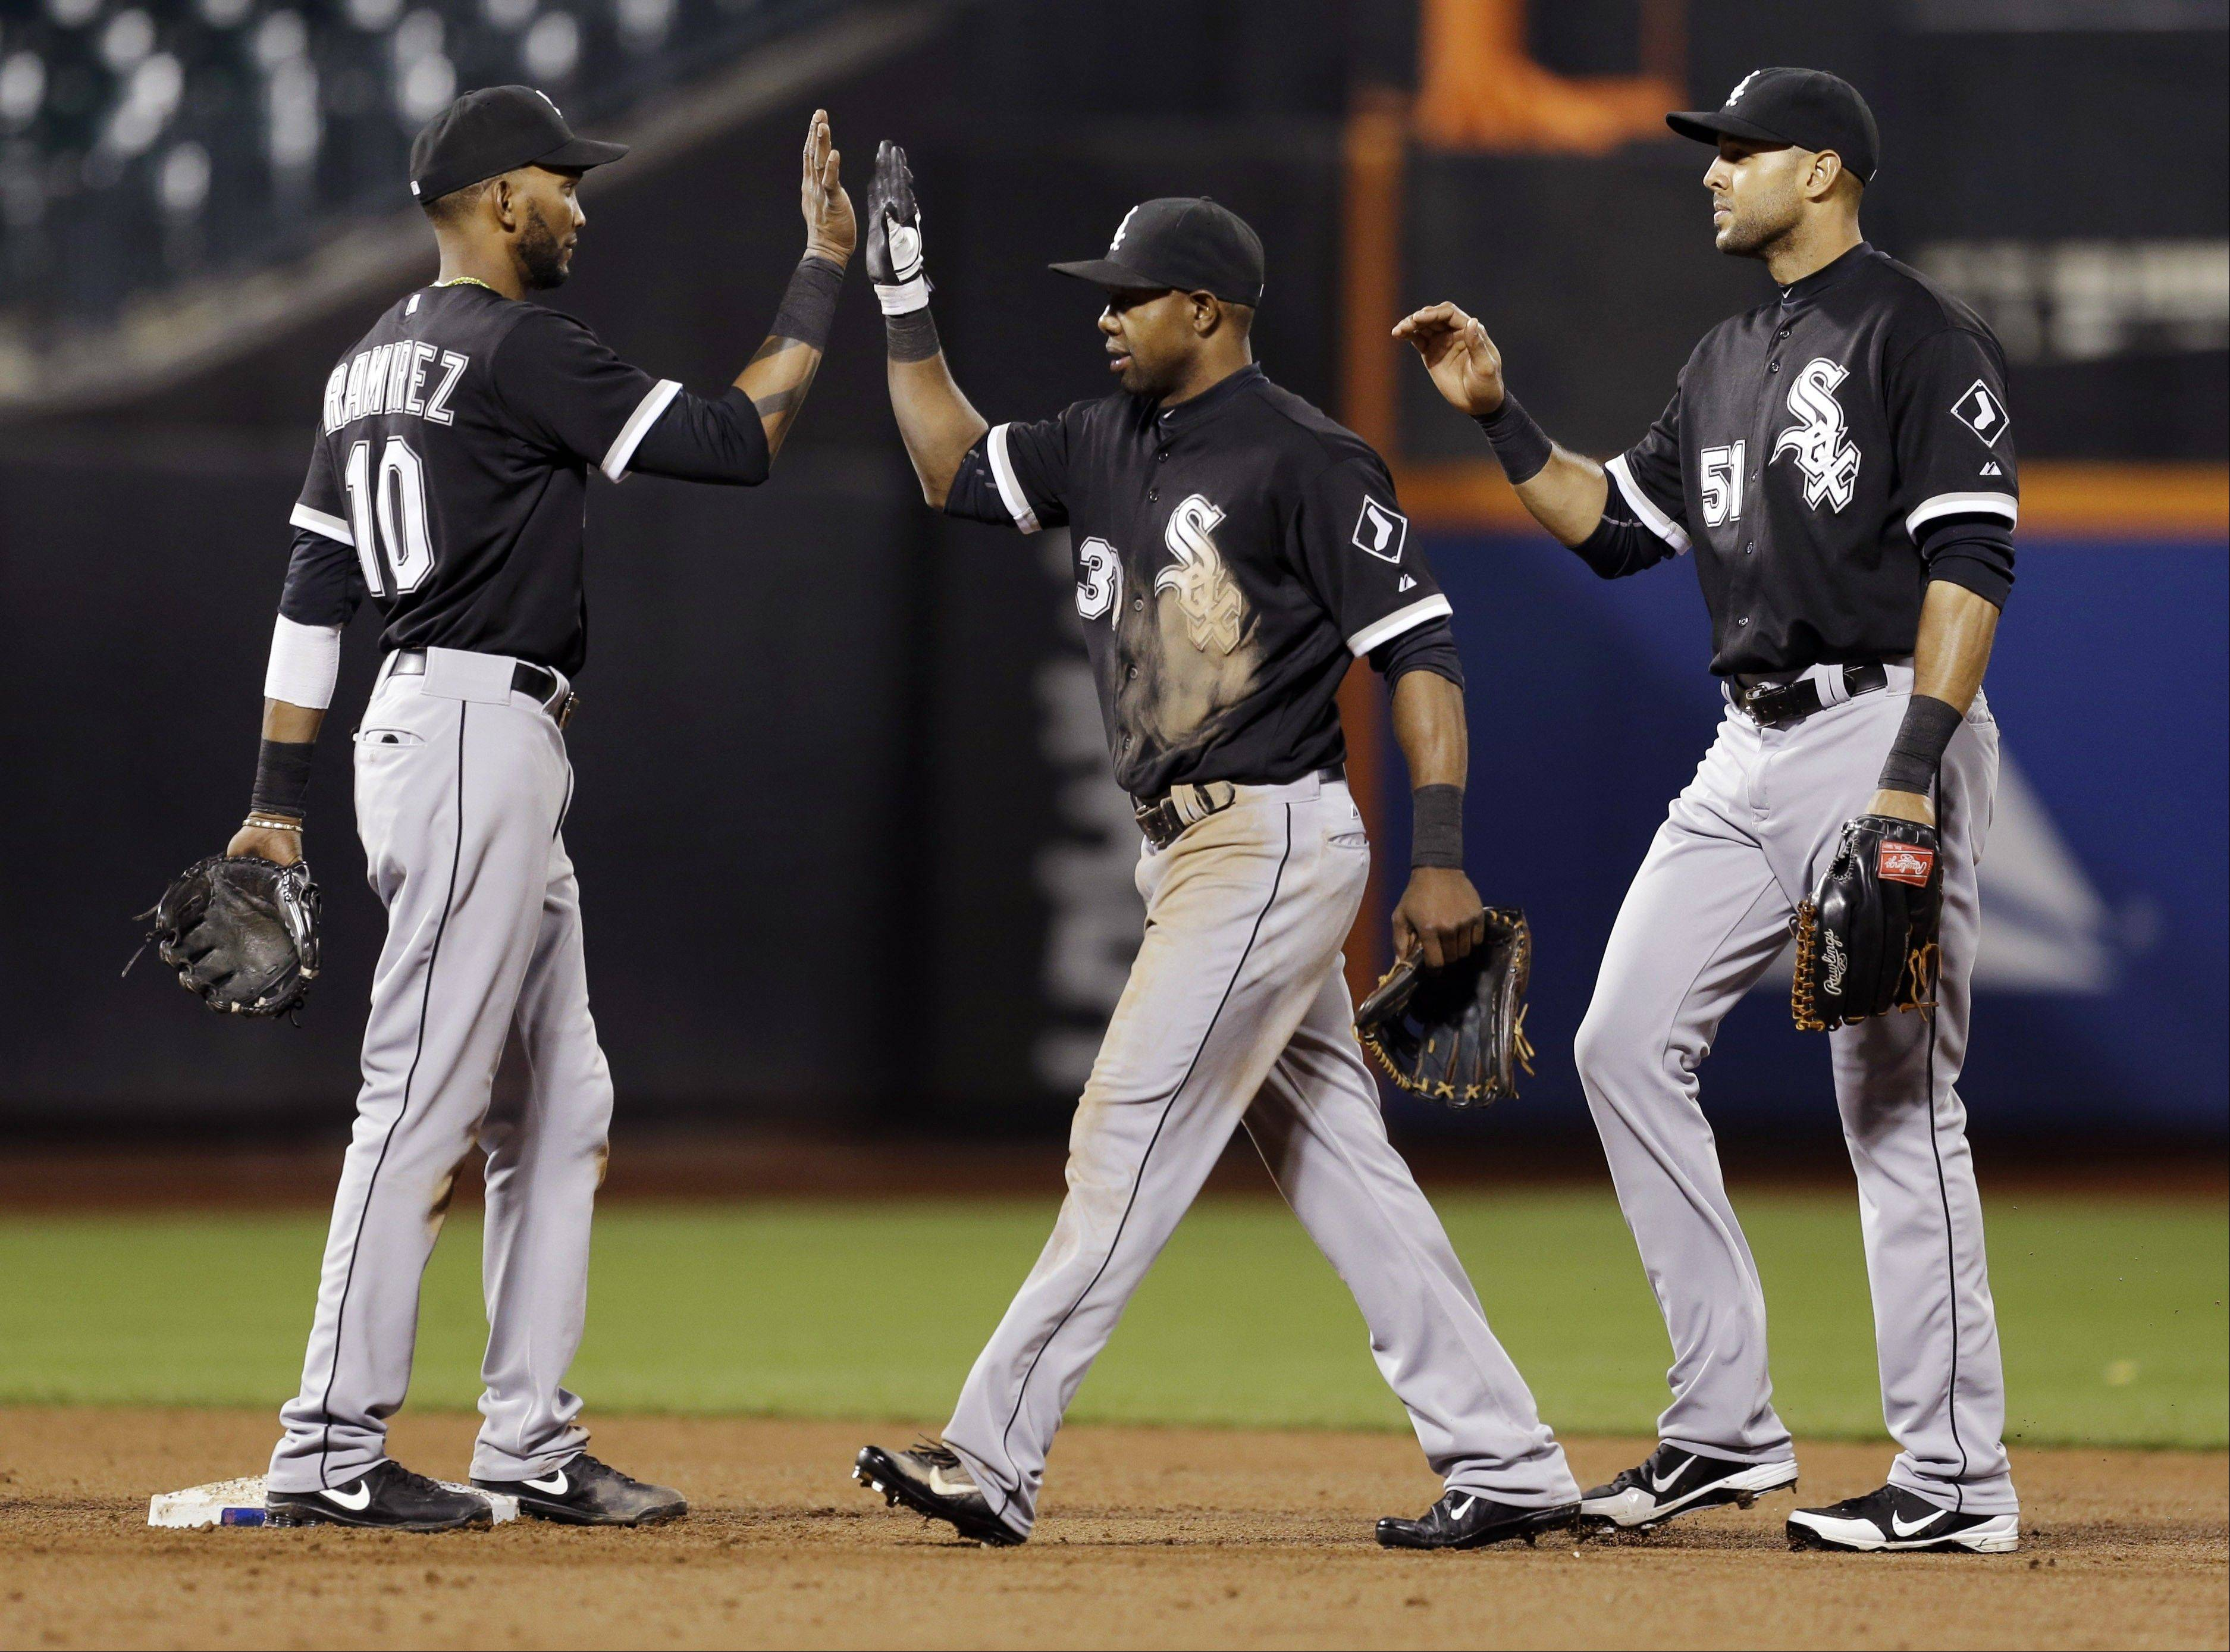 Alexei Ramirez, left, Alejandro De Aza, center, and Alex Rios celebrate after the White Sox beat the Mets on Wednesday in New York. The White Sox won 6-3.